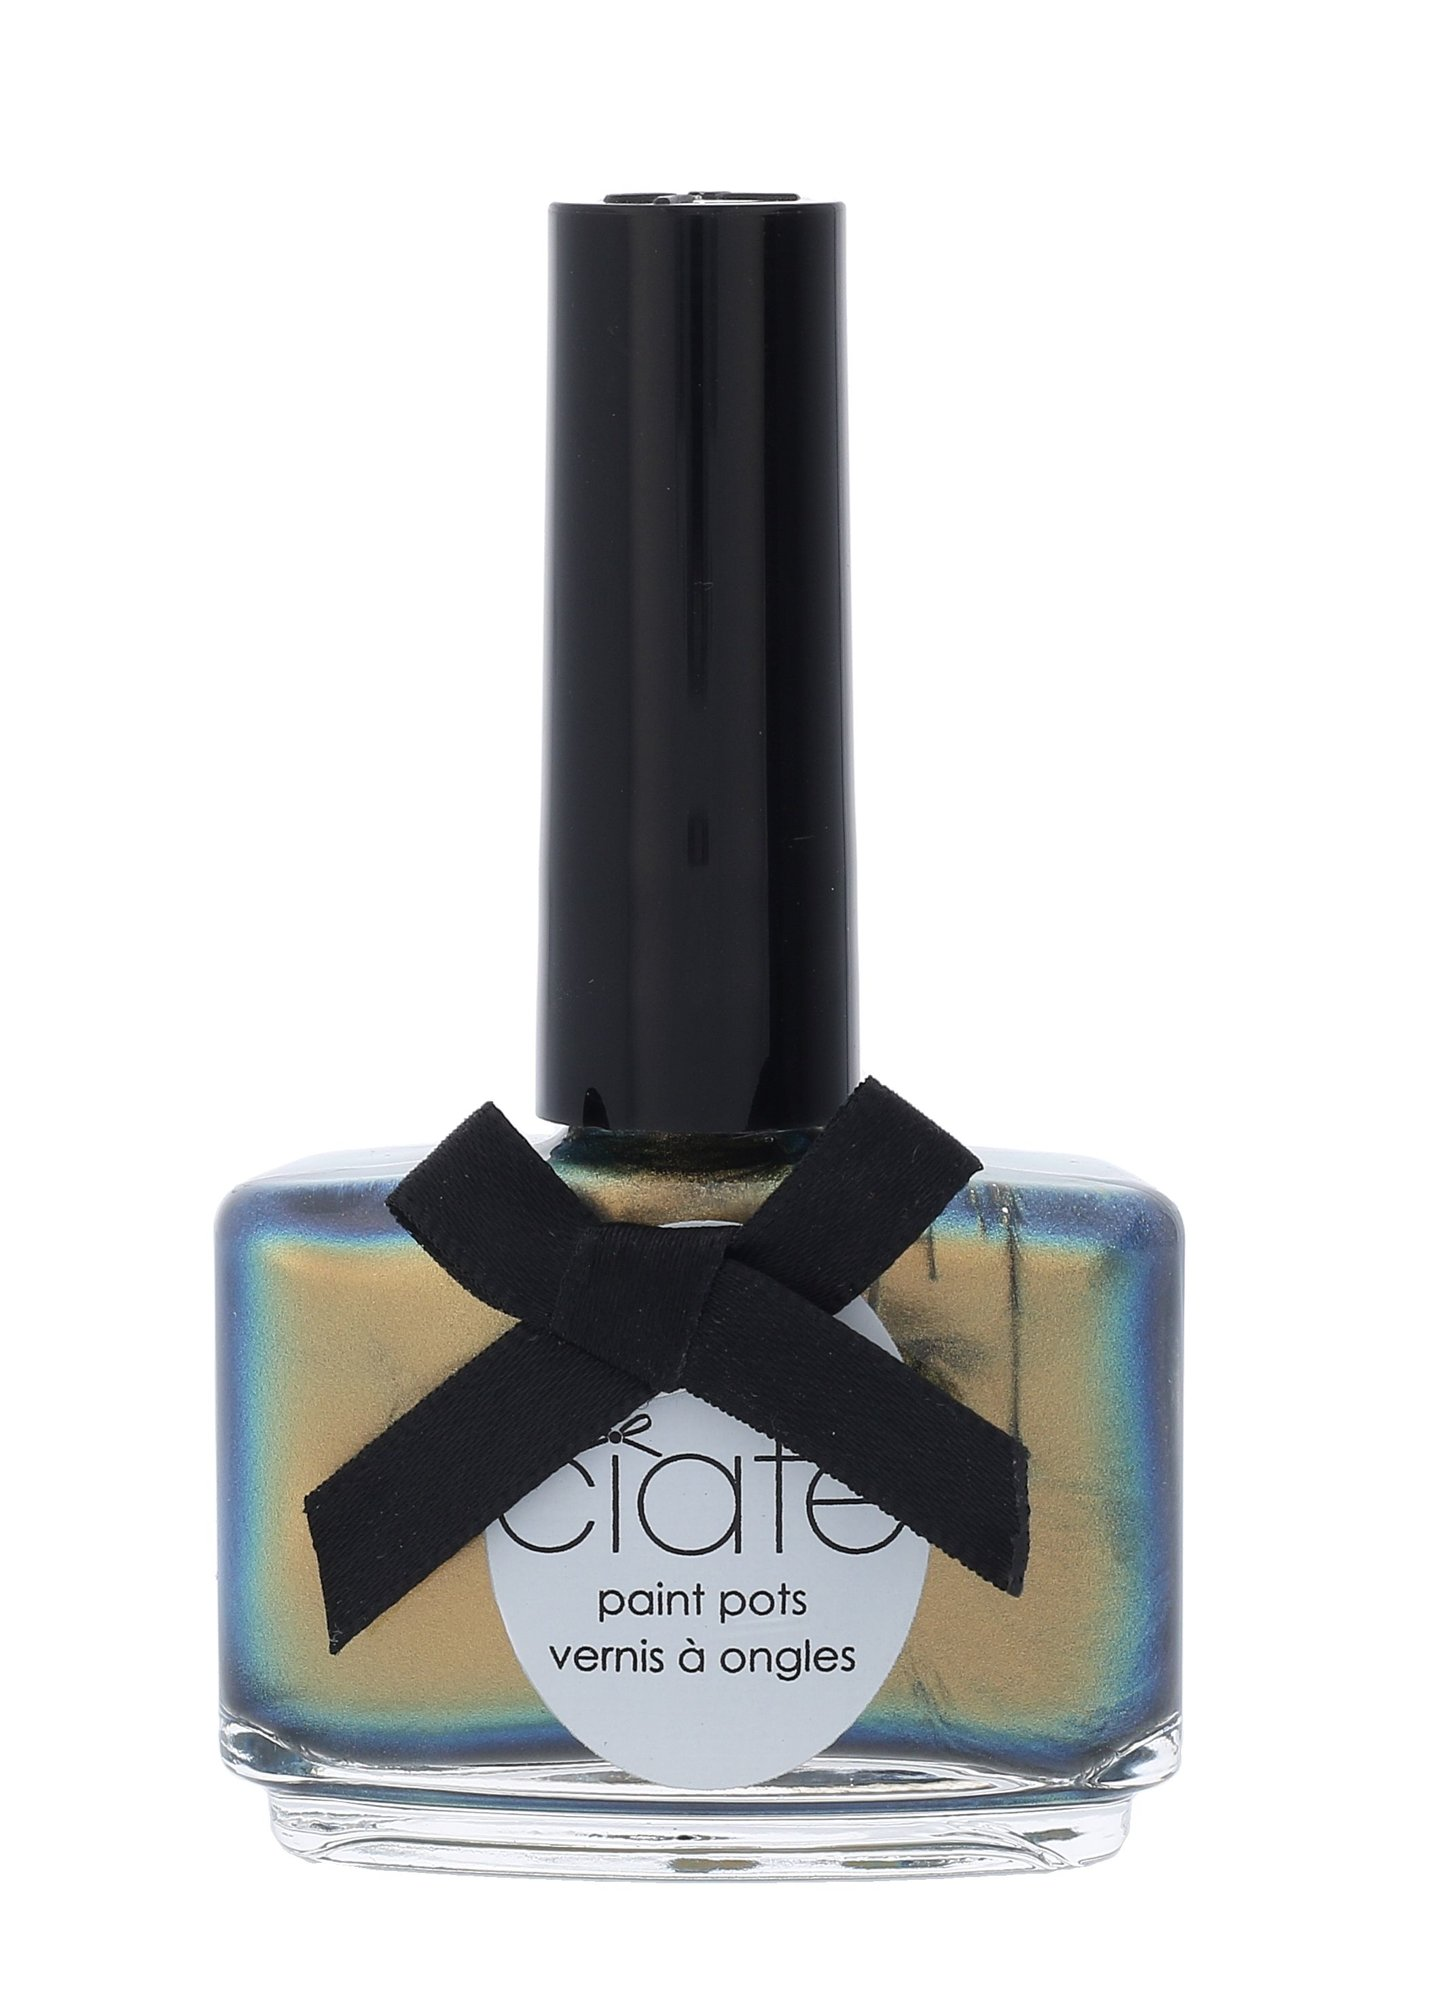 Ciaté Paint Pots Cosmetic 13,5ml PP088 Oil Stick